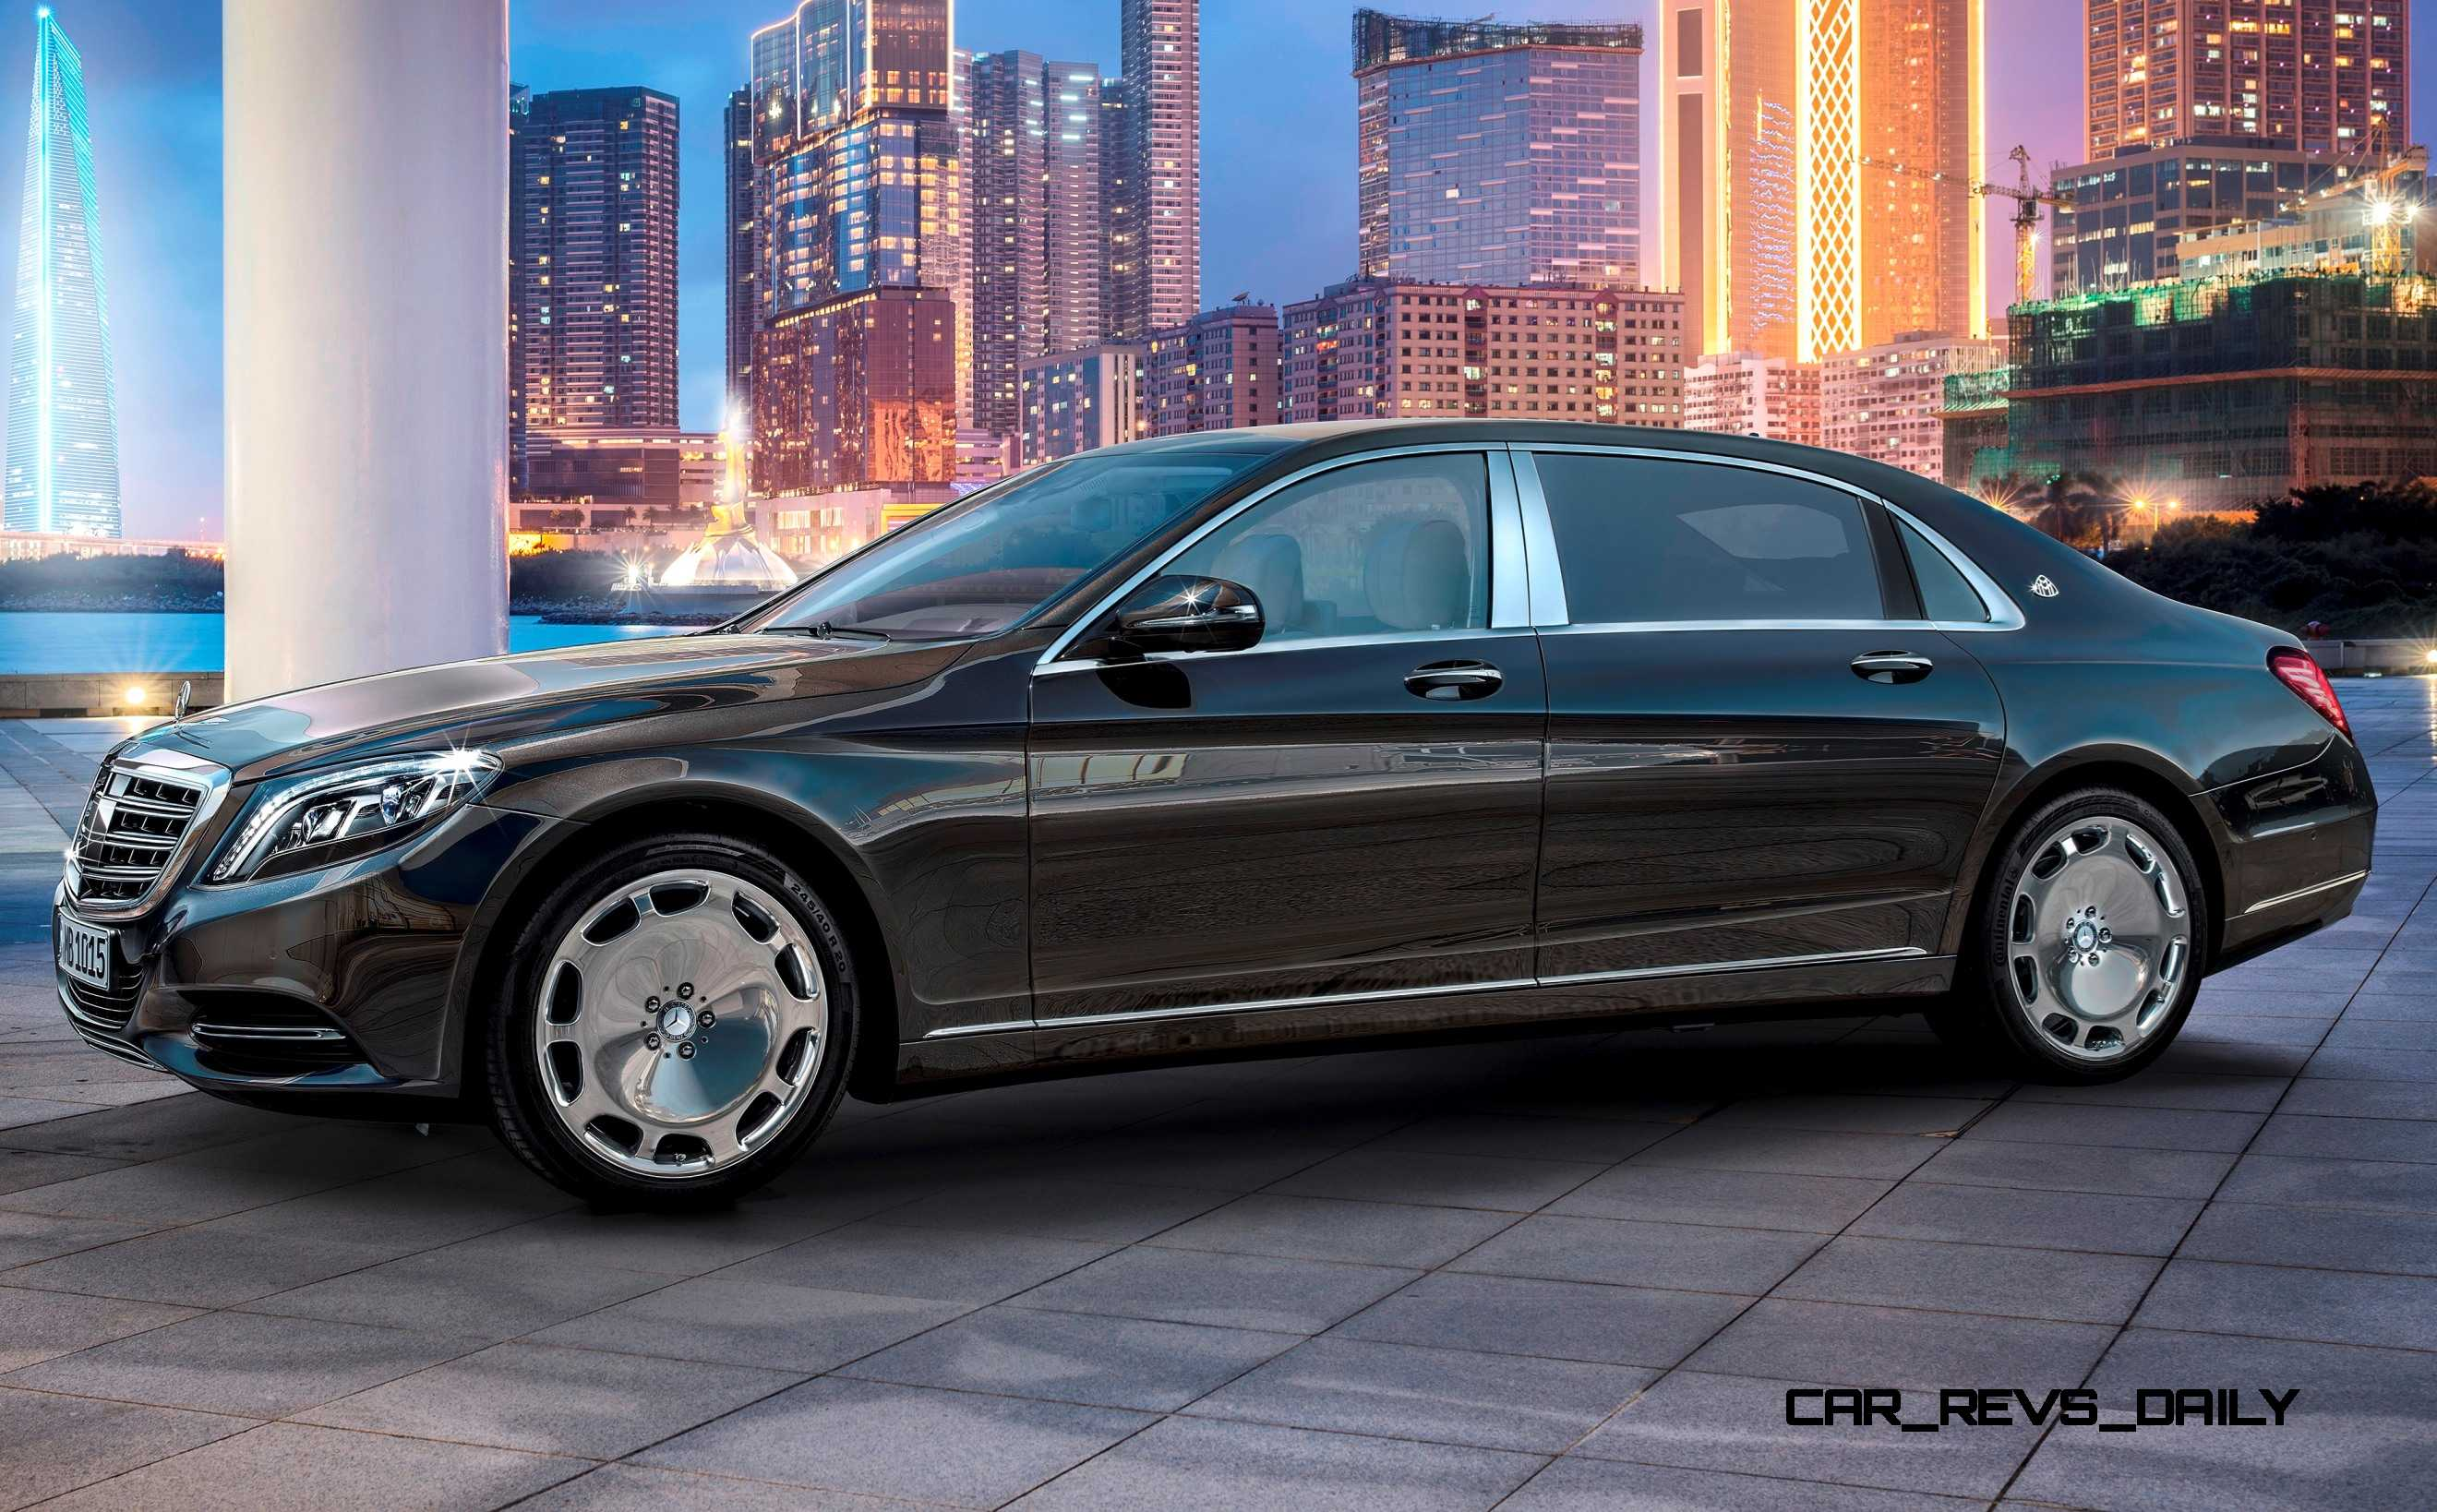 http://www.car-revs-daily.com/wp-content/uploads/2014/11/2015-Mercedes-Maybach-S600-24.jpg